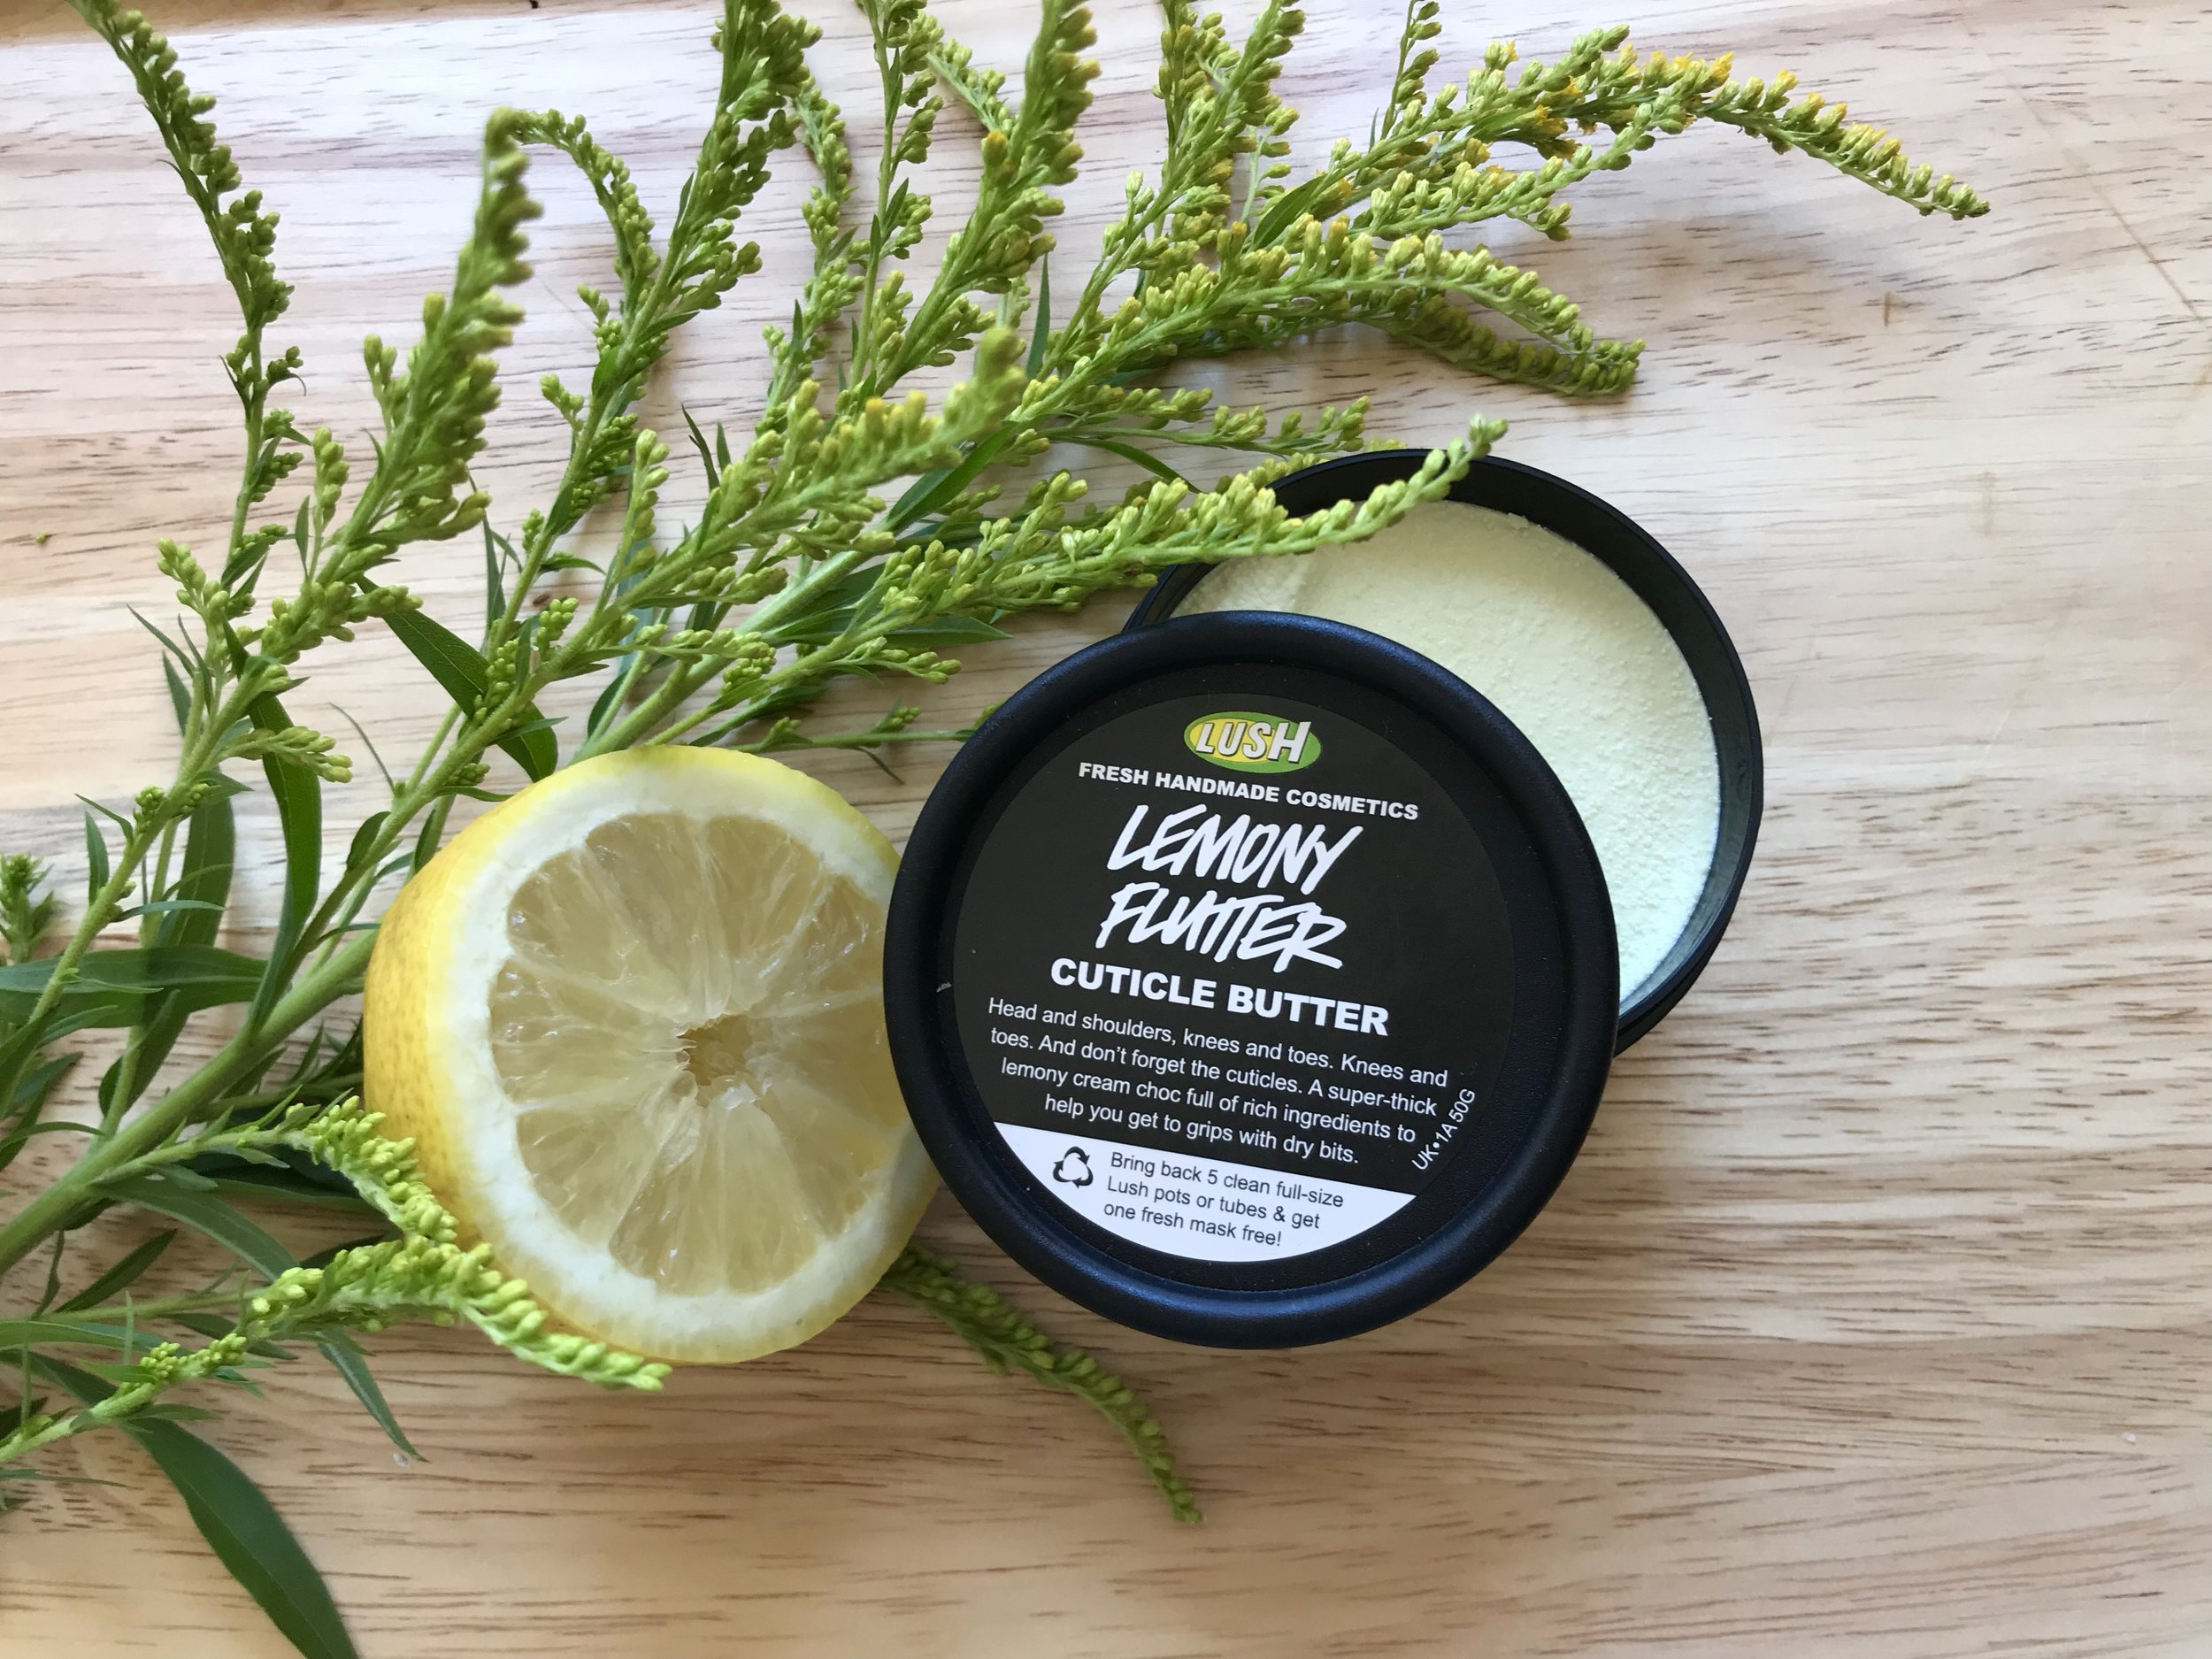 Lemony Flutter Cuticle Butter by Lush. A creamy, citrusy treat for dry skin